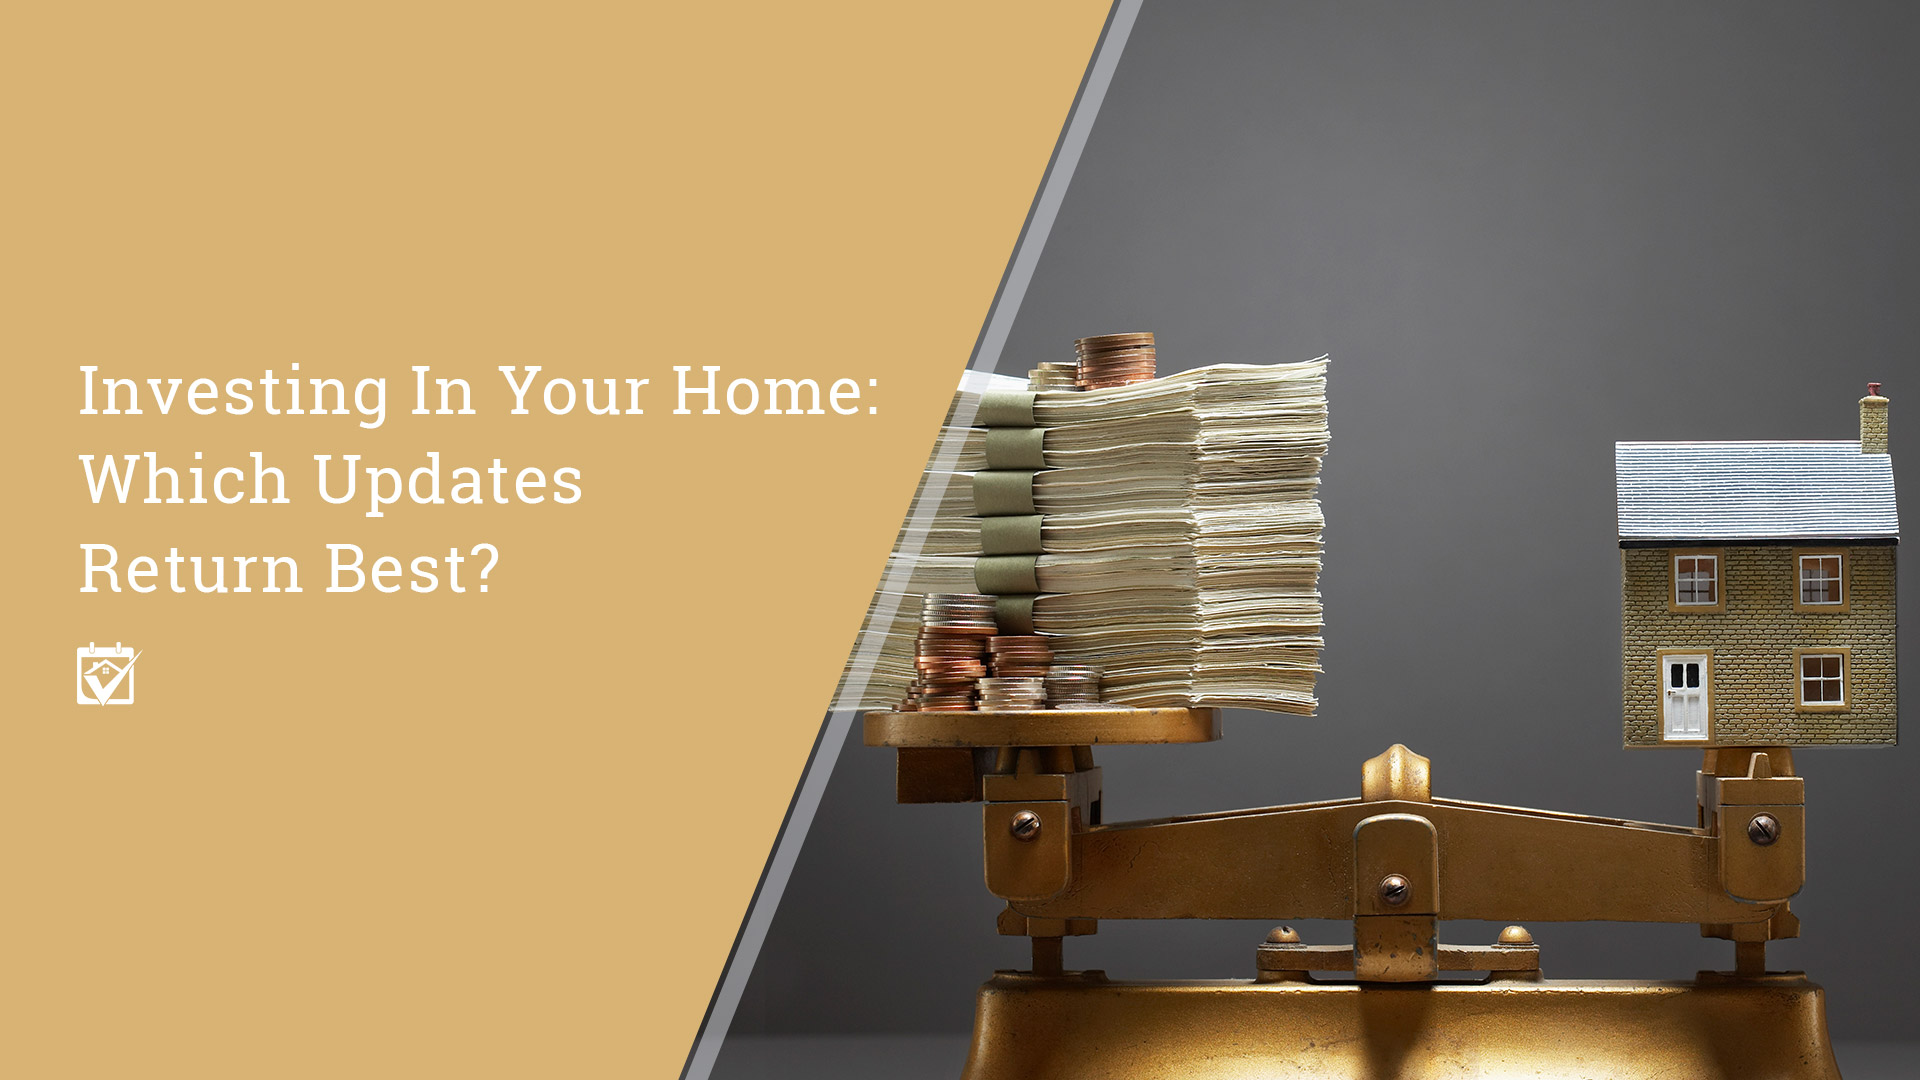 Investing In Your Home: Which Updates Return Best?